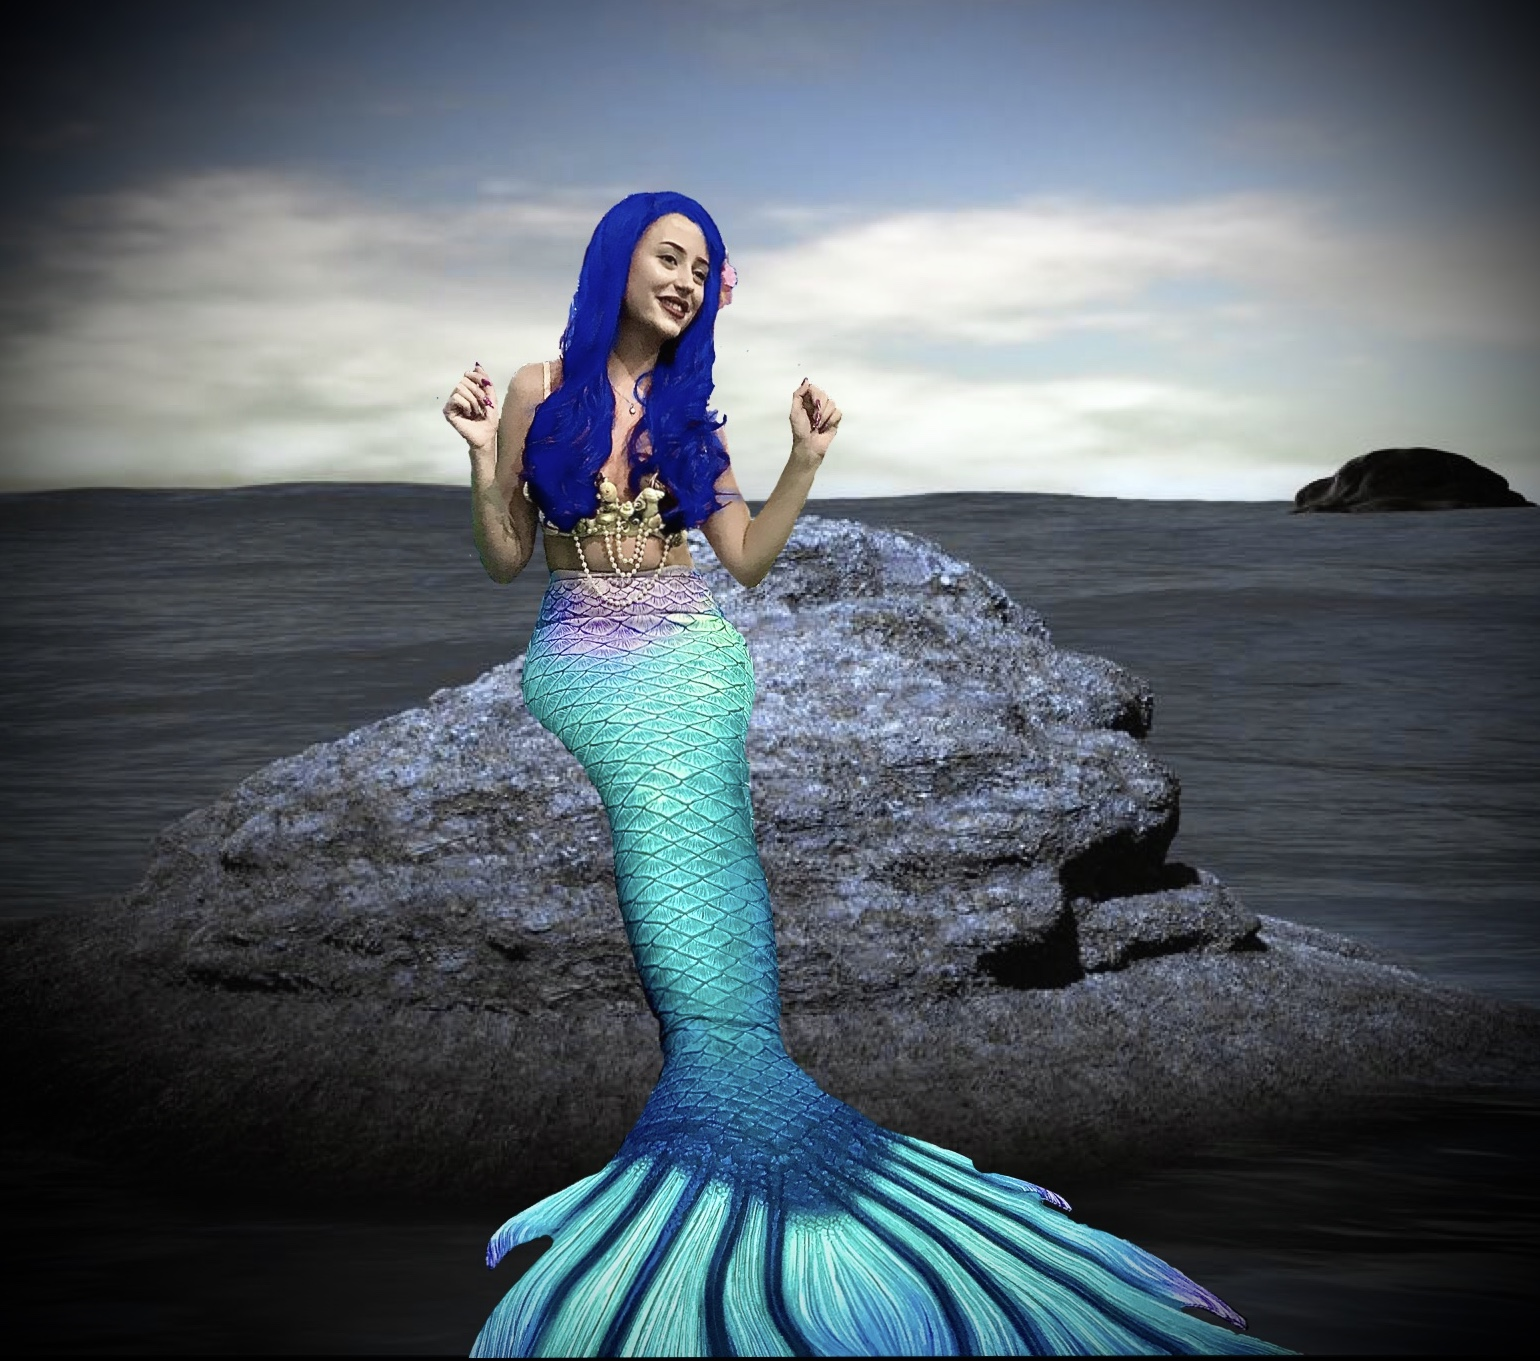 Our Mersmerising Mermaid